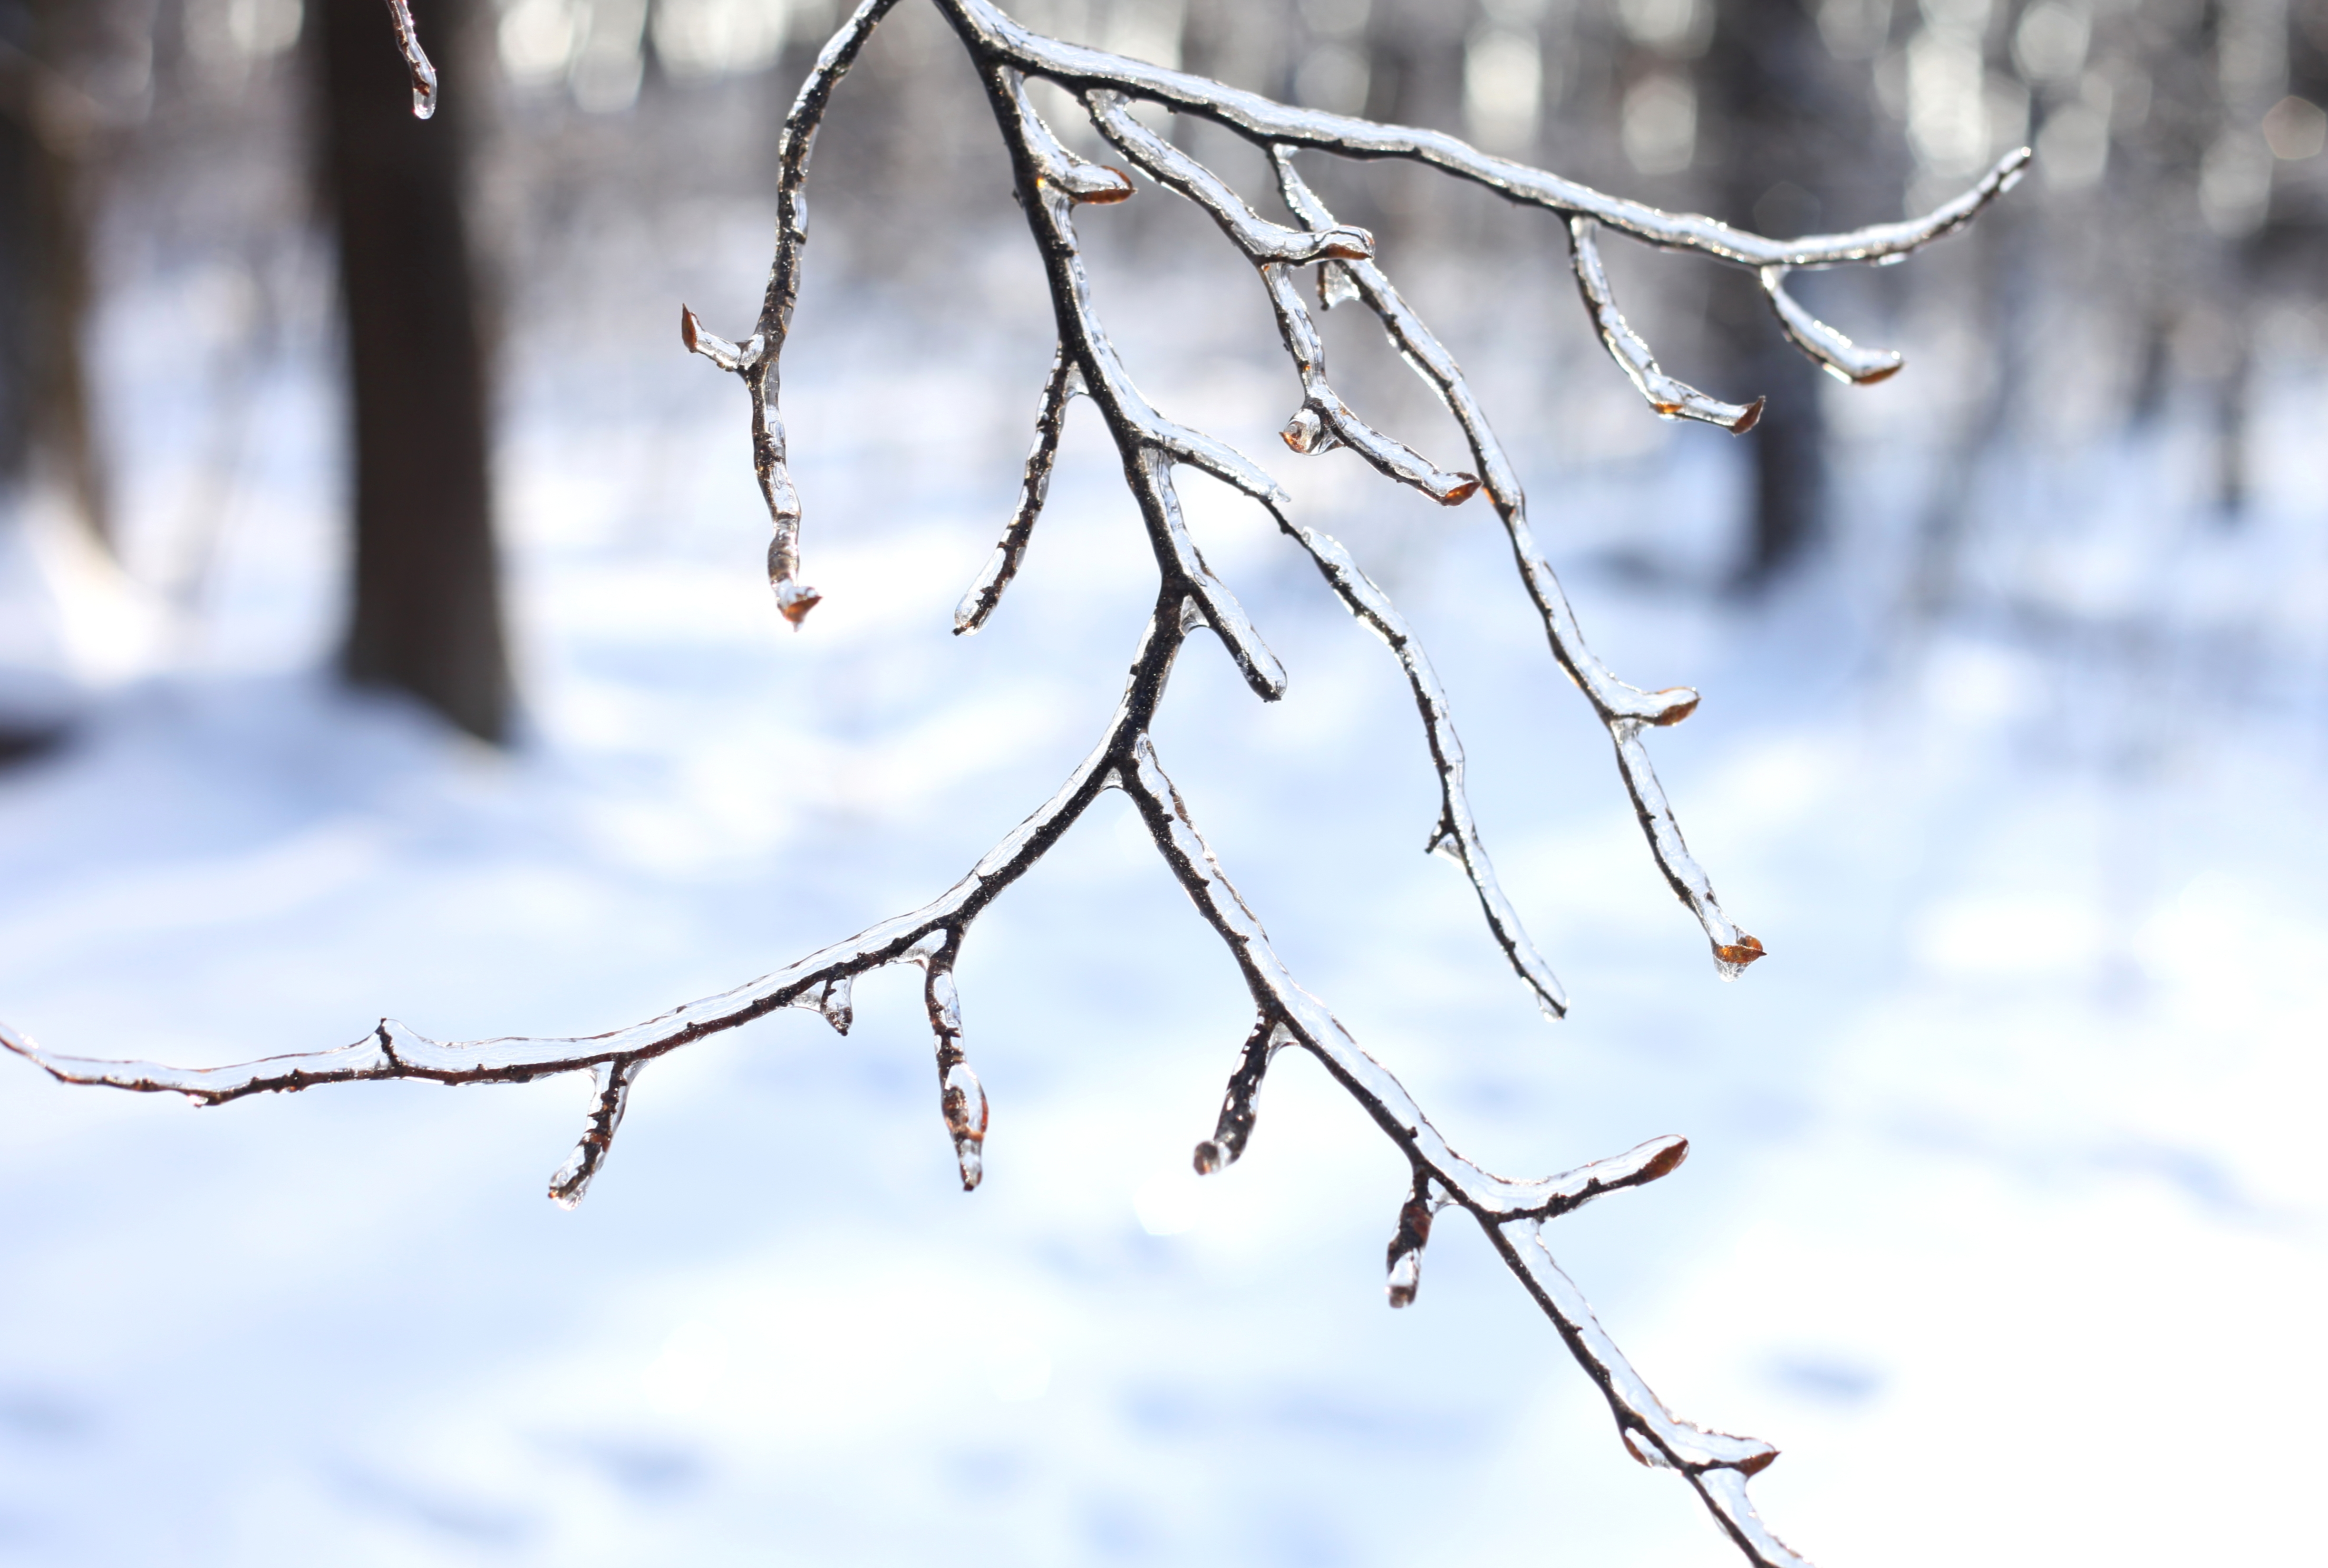 a branch covered with ice, photo 3